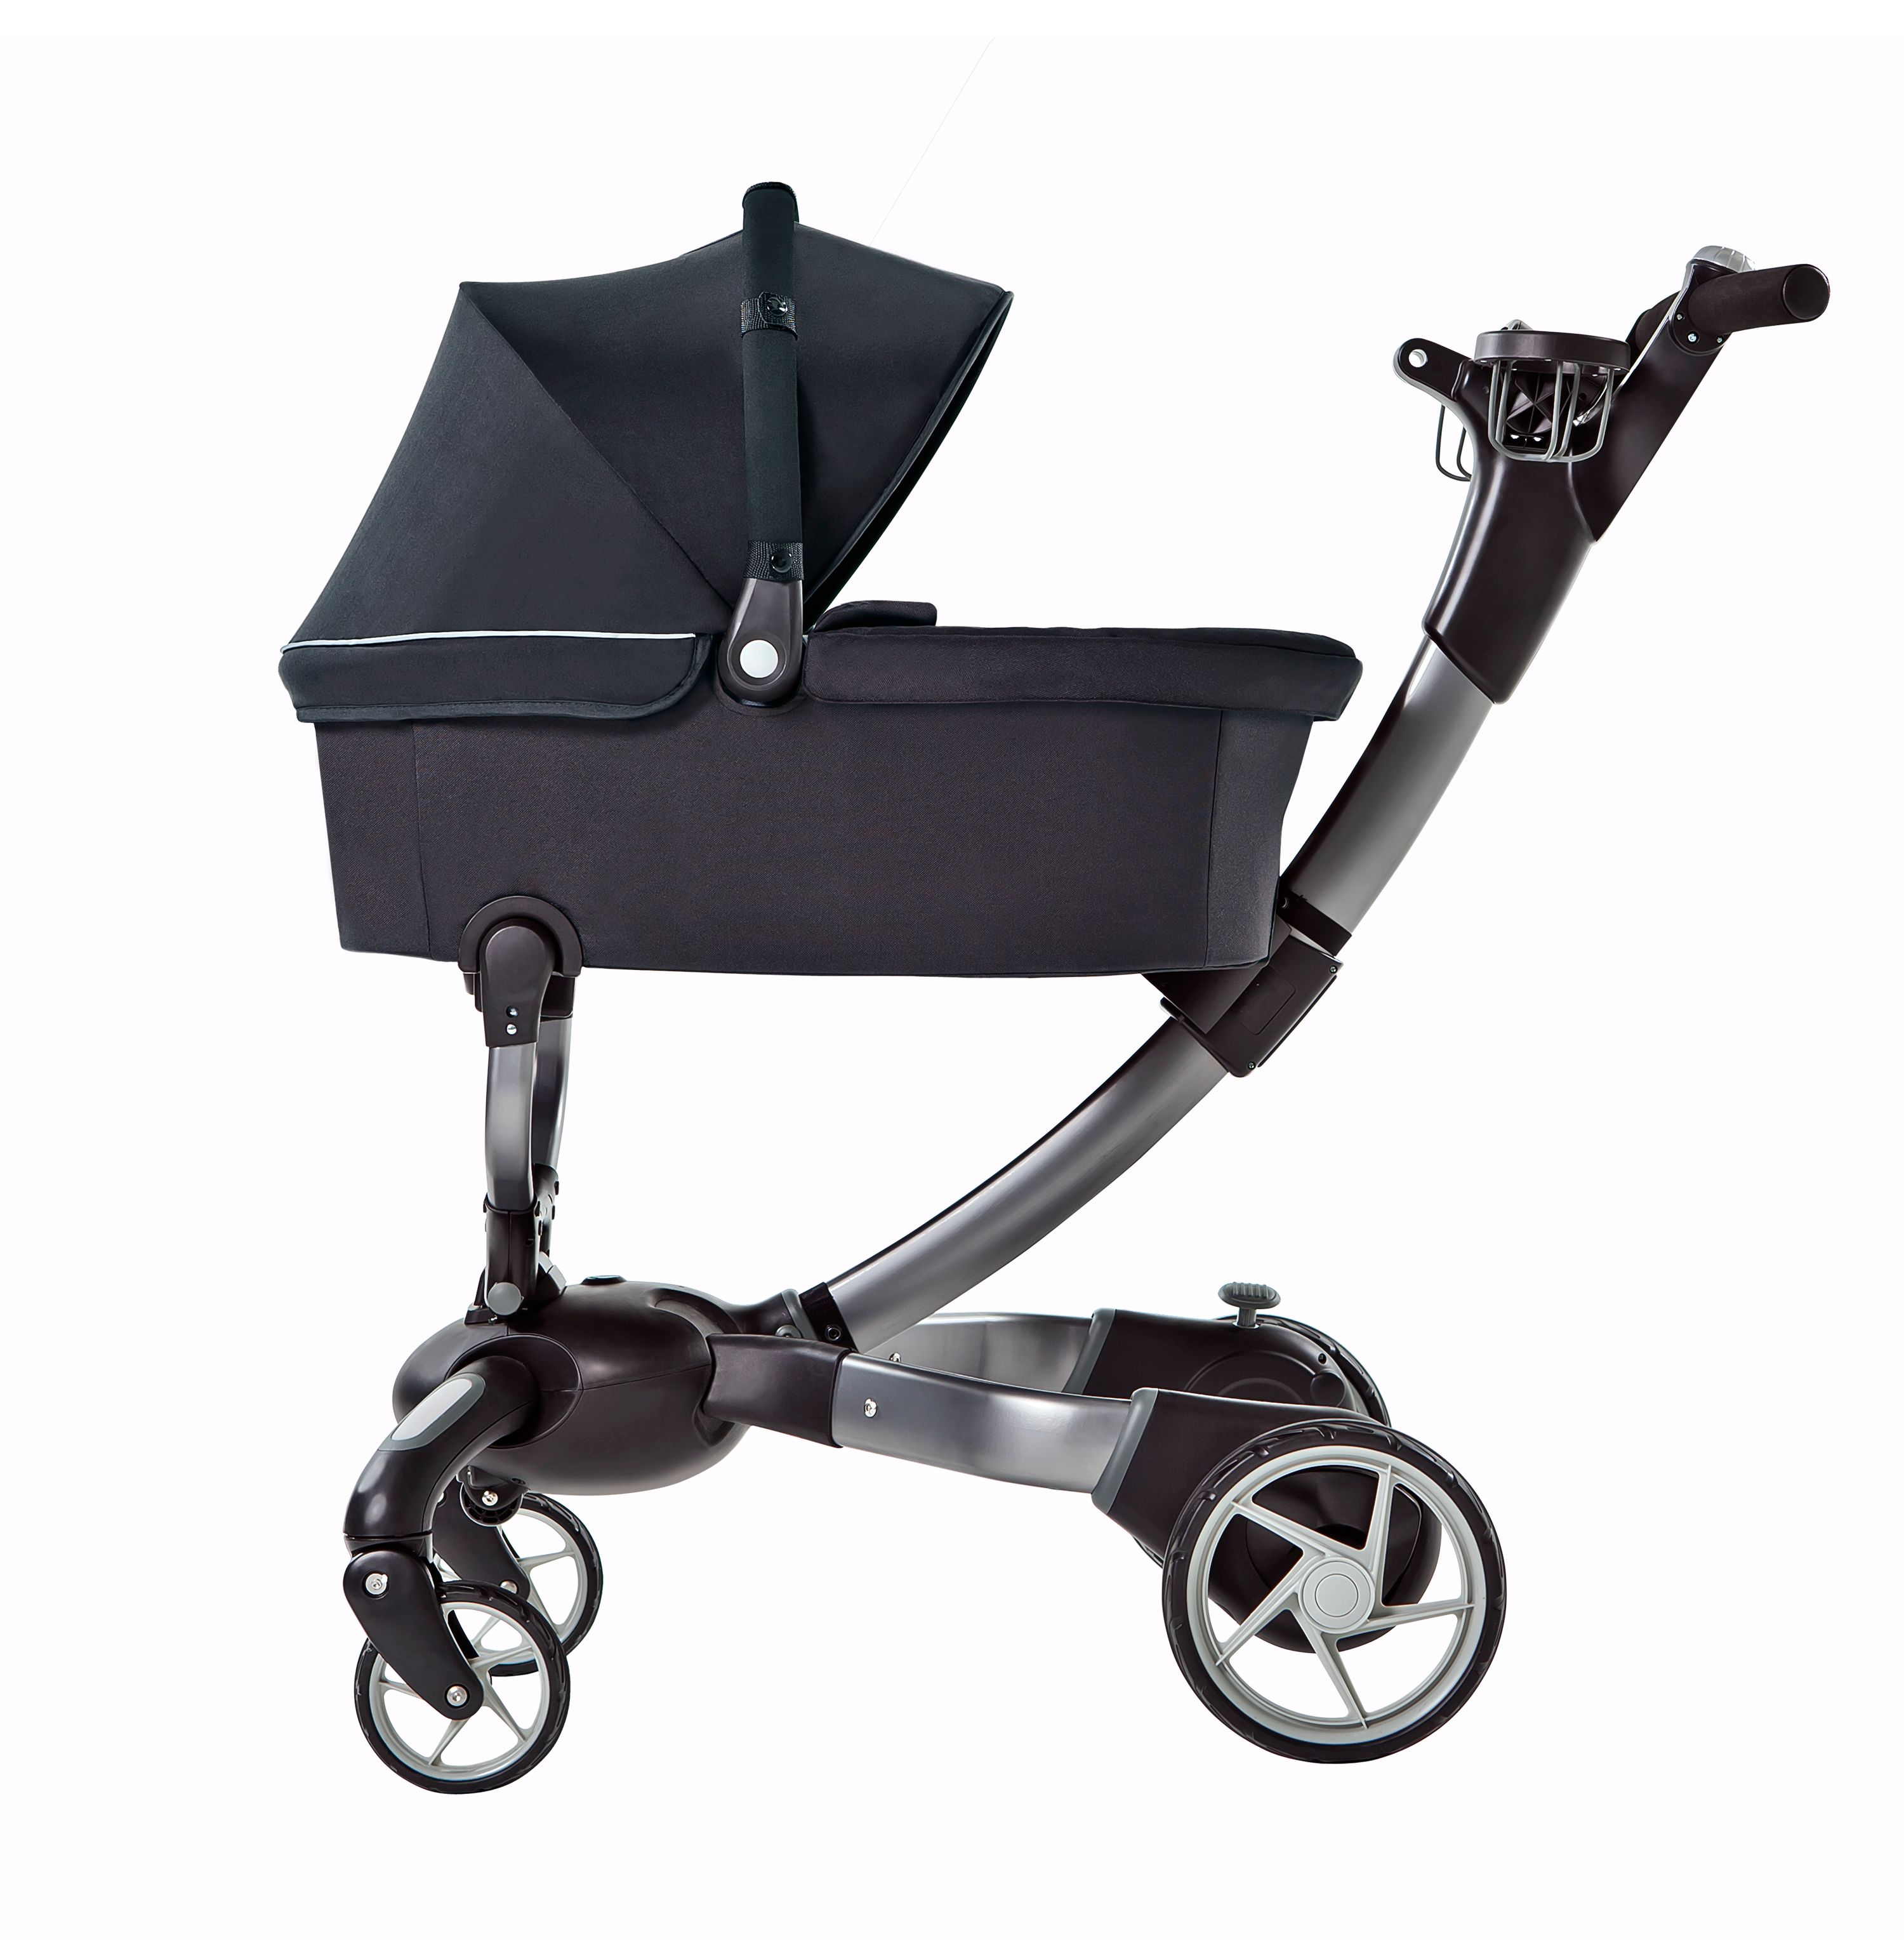 4Moms 4Moms Origami Pushchair Package with Silver Seat Liner